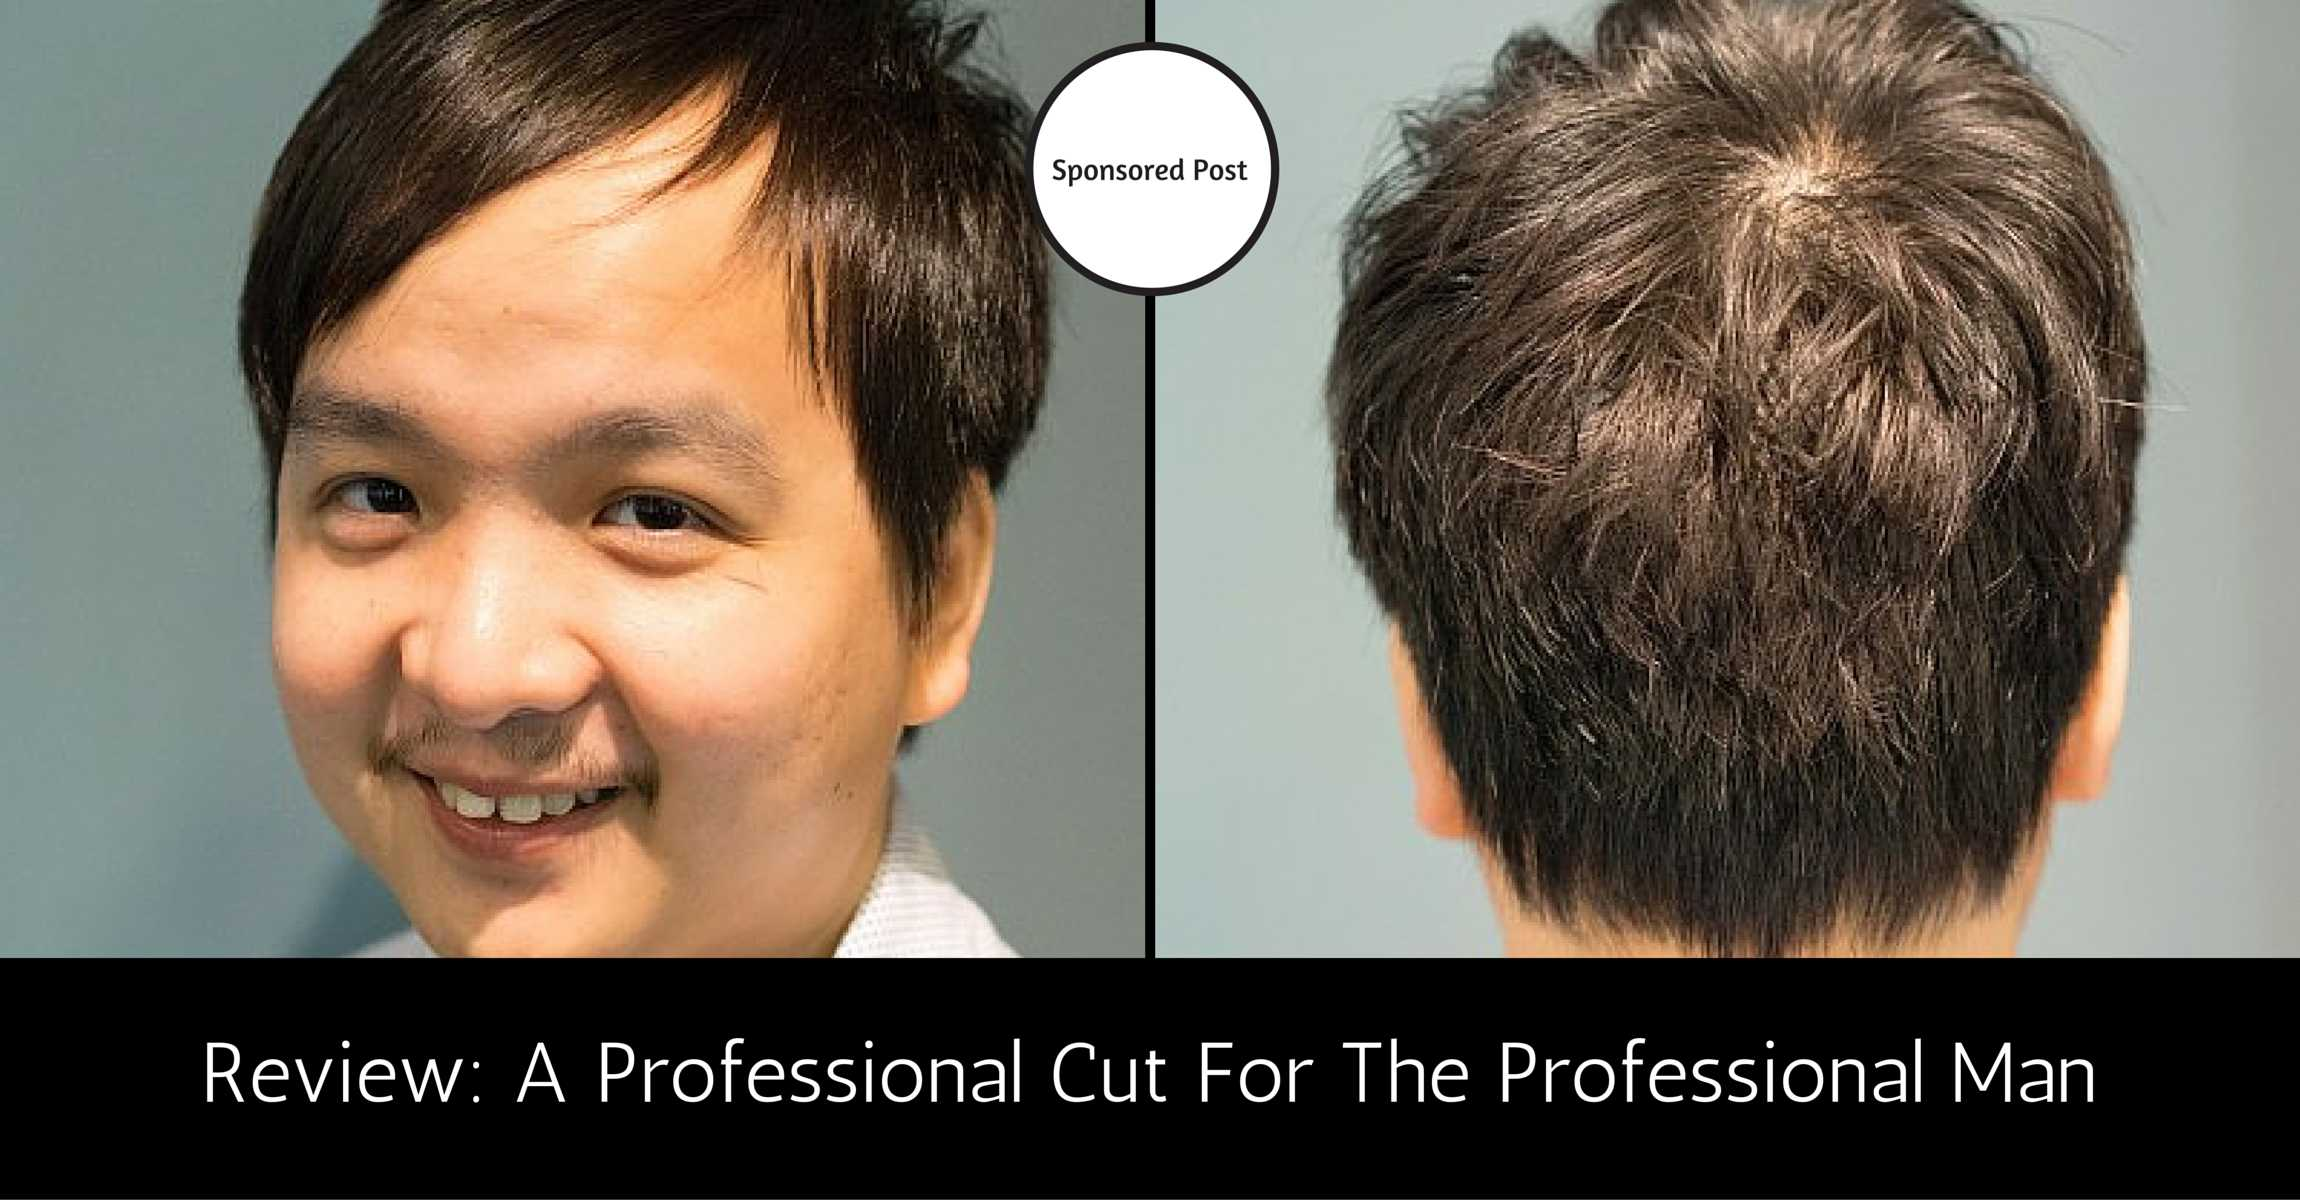 Professional Men's Haircut to Project Professionalism at Work